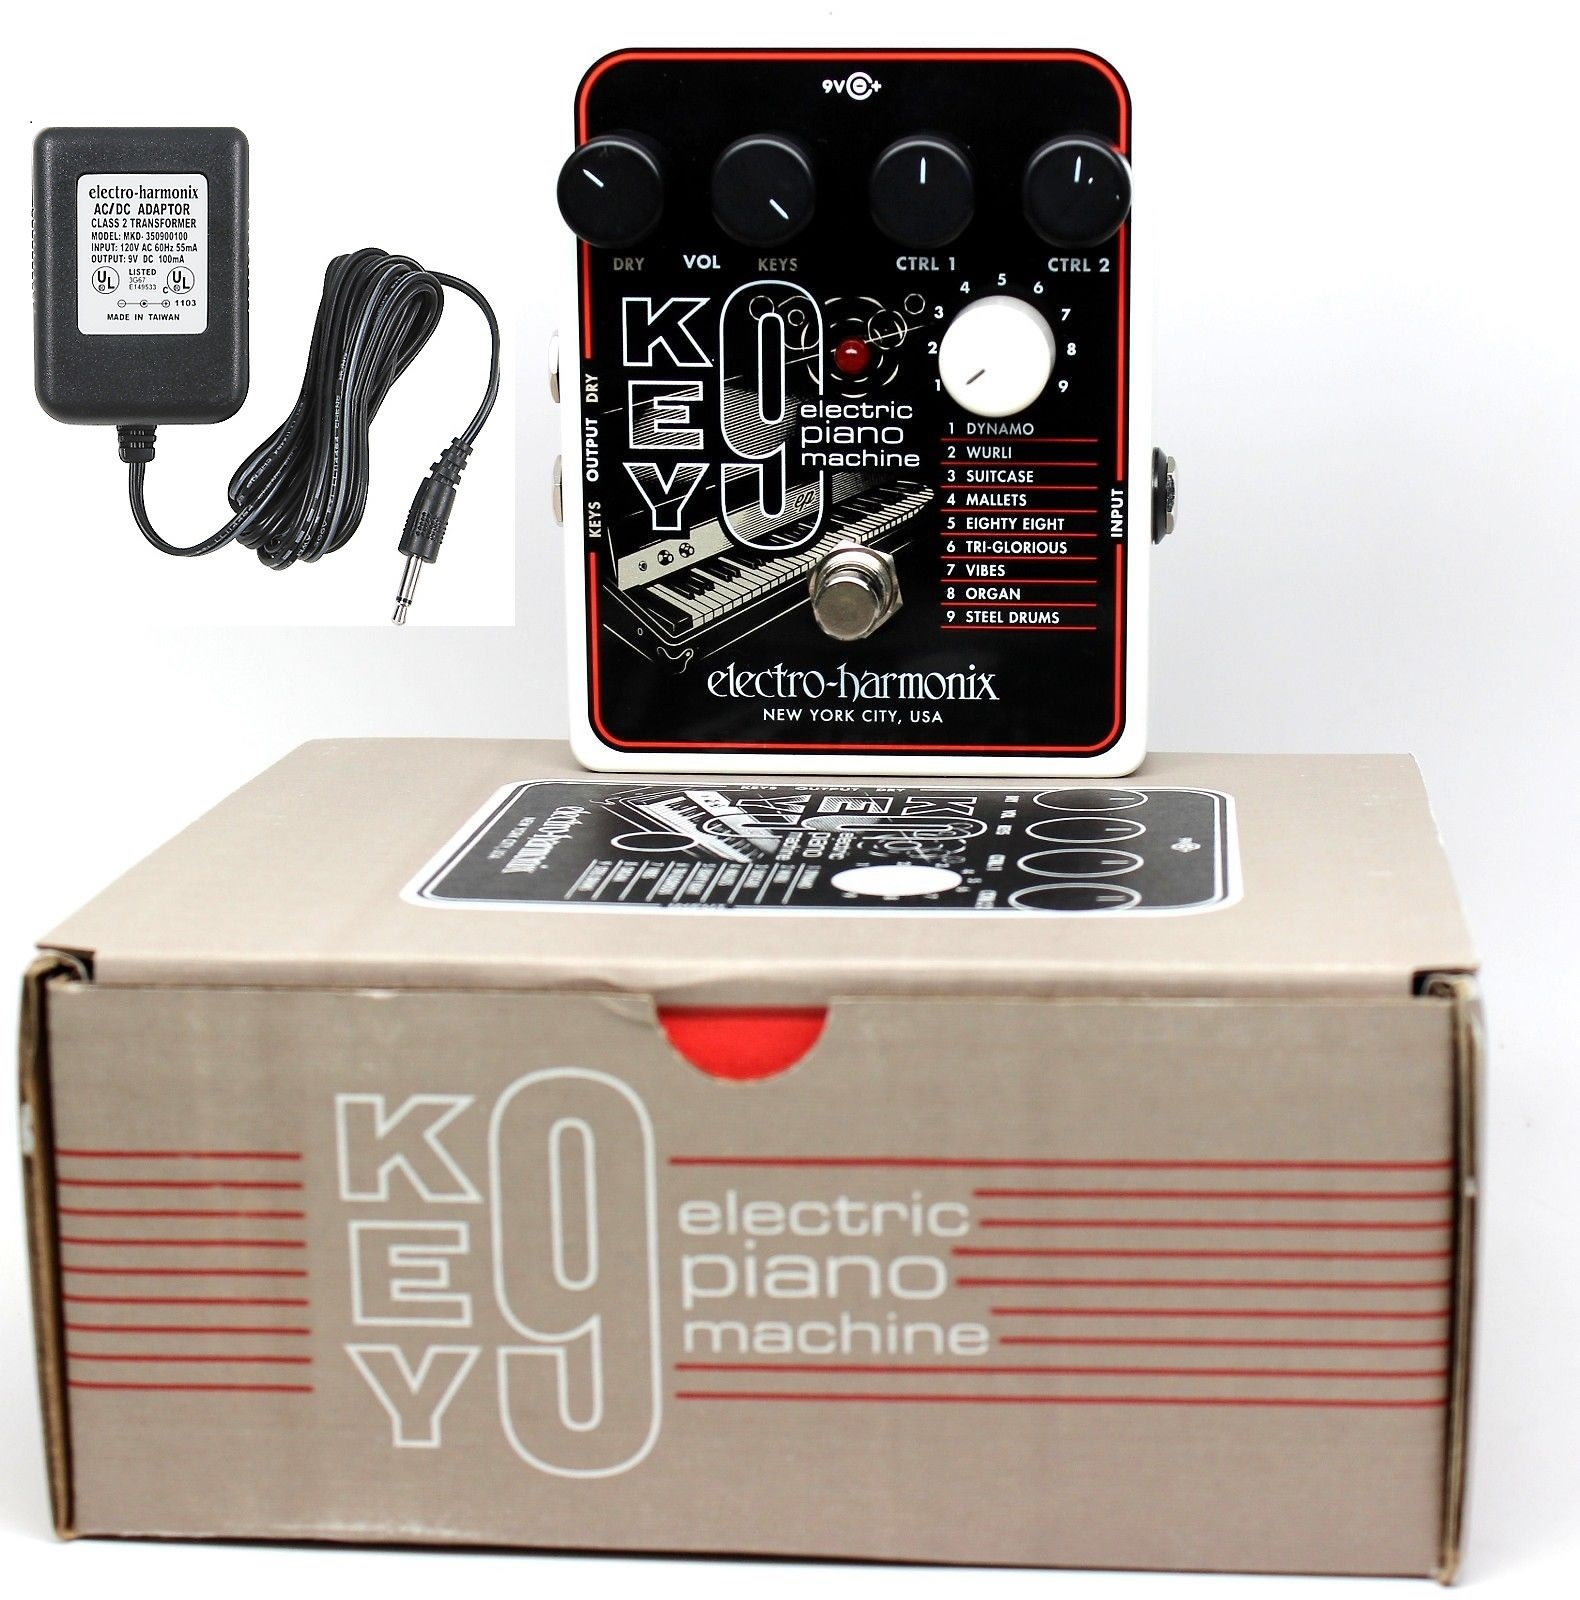 Electro Harmonix EHX KEY 9 Electric Piano Machine KEY 9 Guitar Pedal with AC Adapter